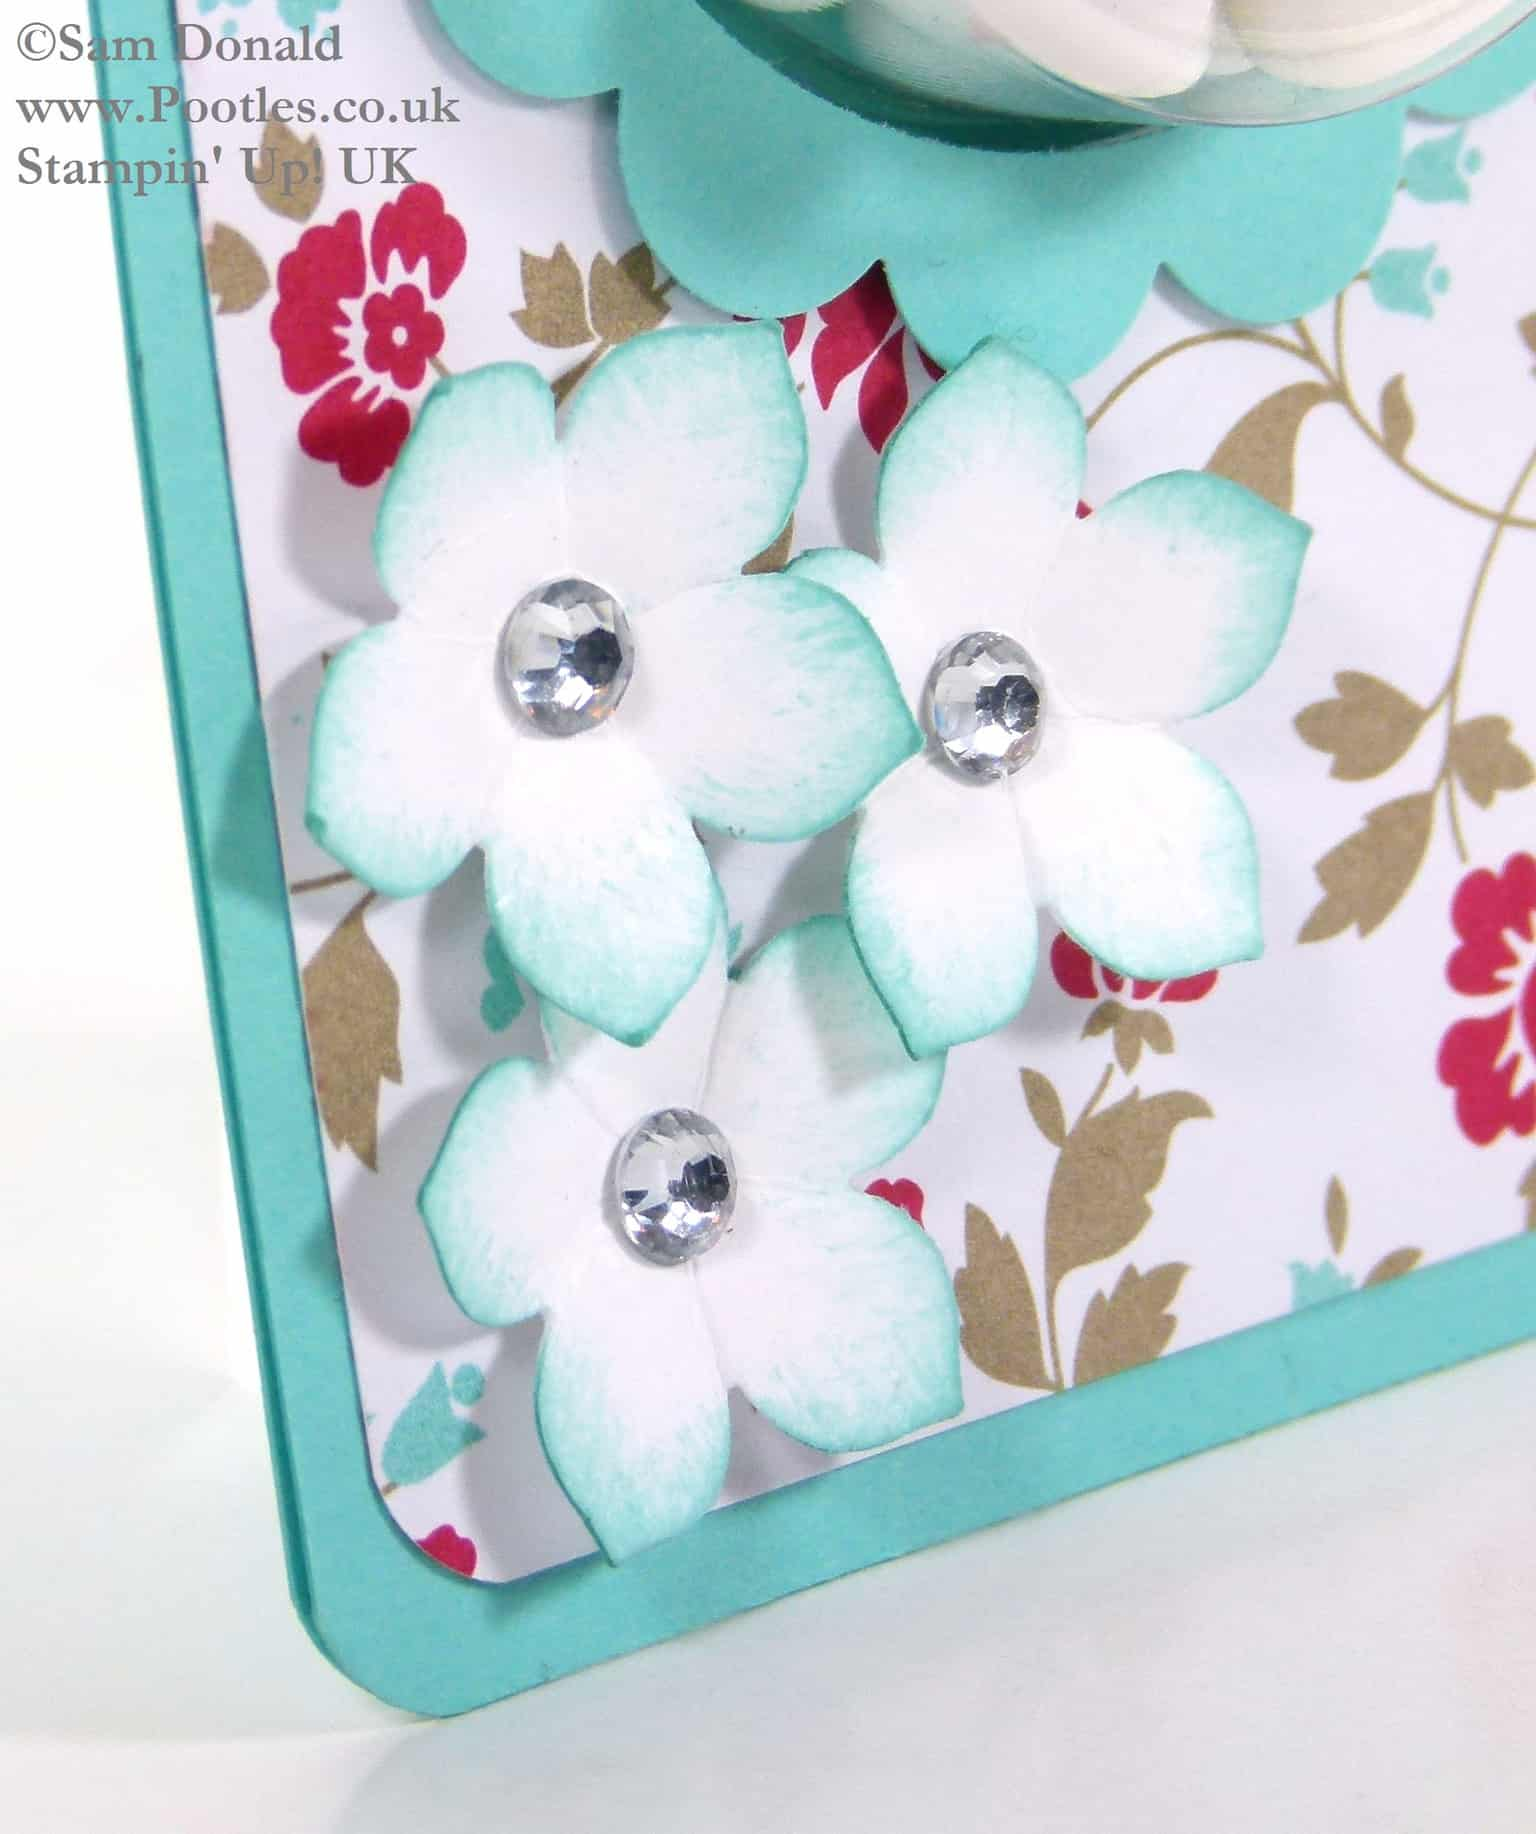 Tic Tac Sweetie Treat Holder Tutorial